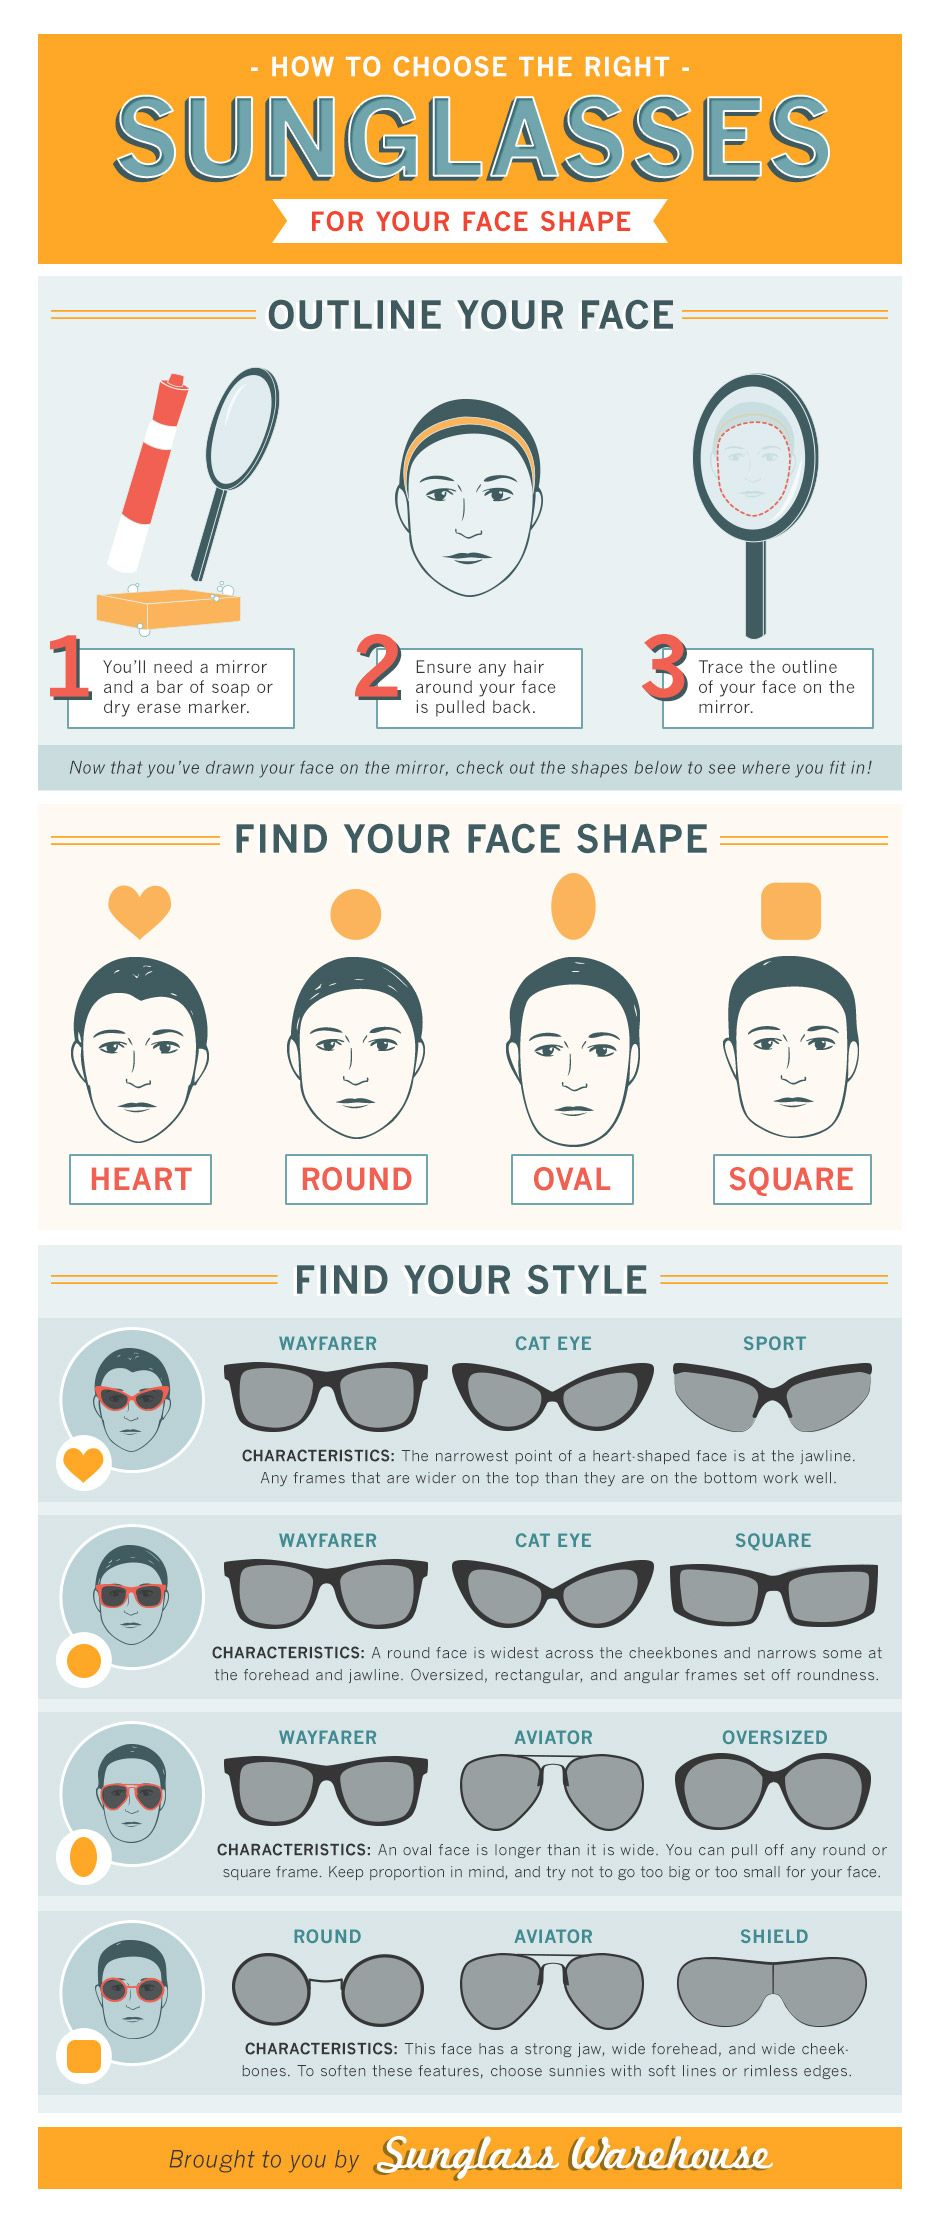 sunglasses website ktpy  website that has many tips for what to wear with your face shape : hats,